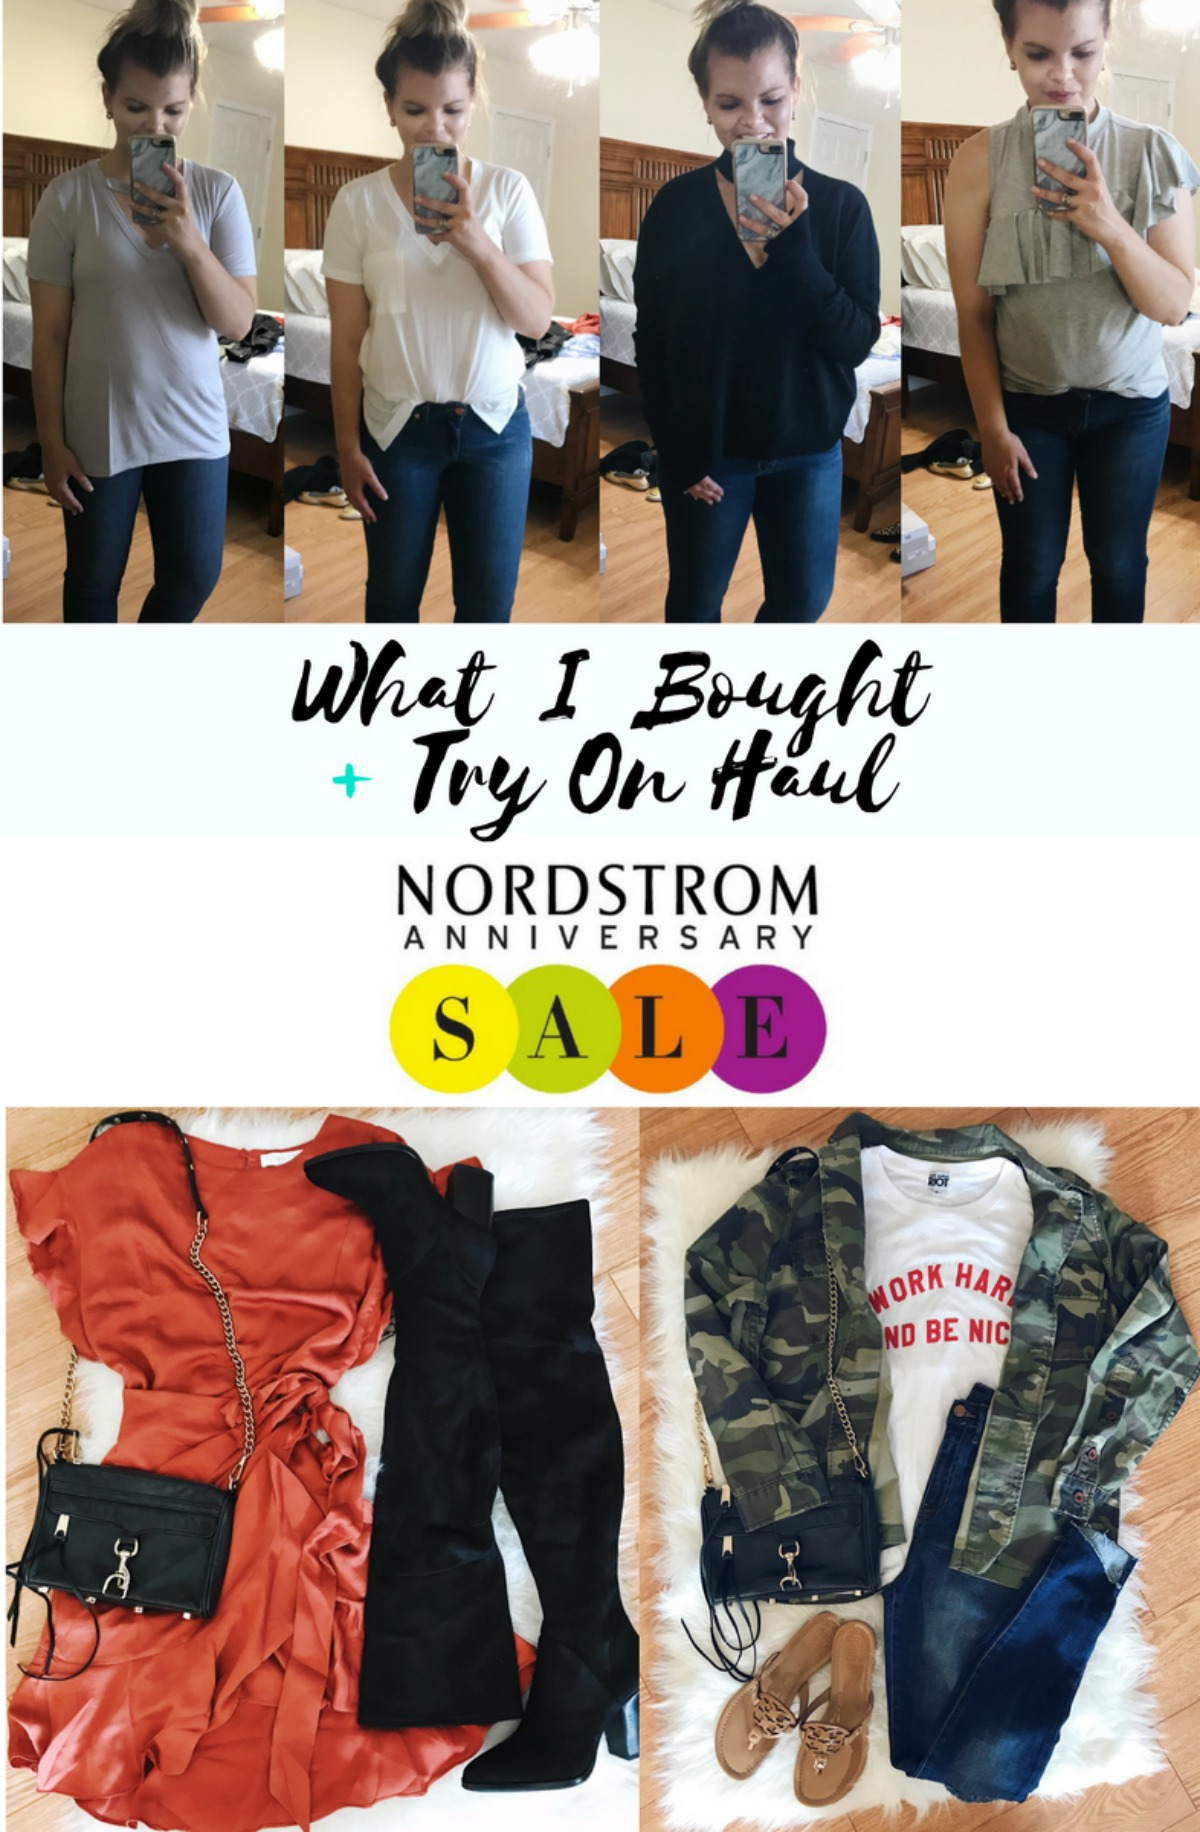 What I Purchased + Try On Haul from the Nordstrom Anniversary Sale